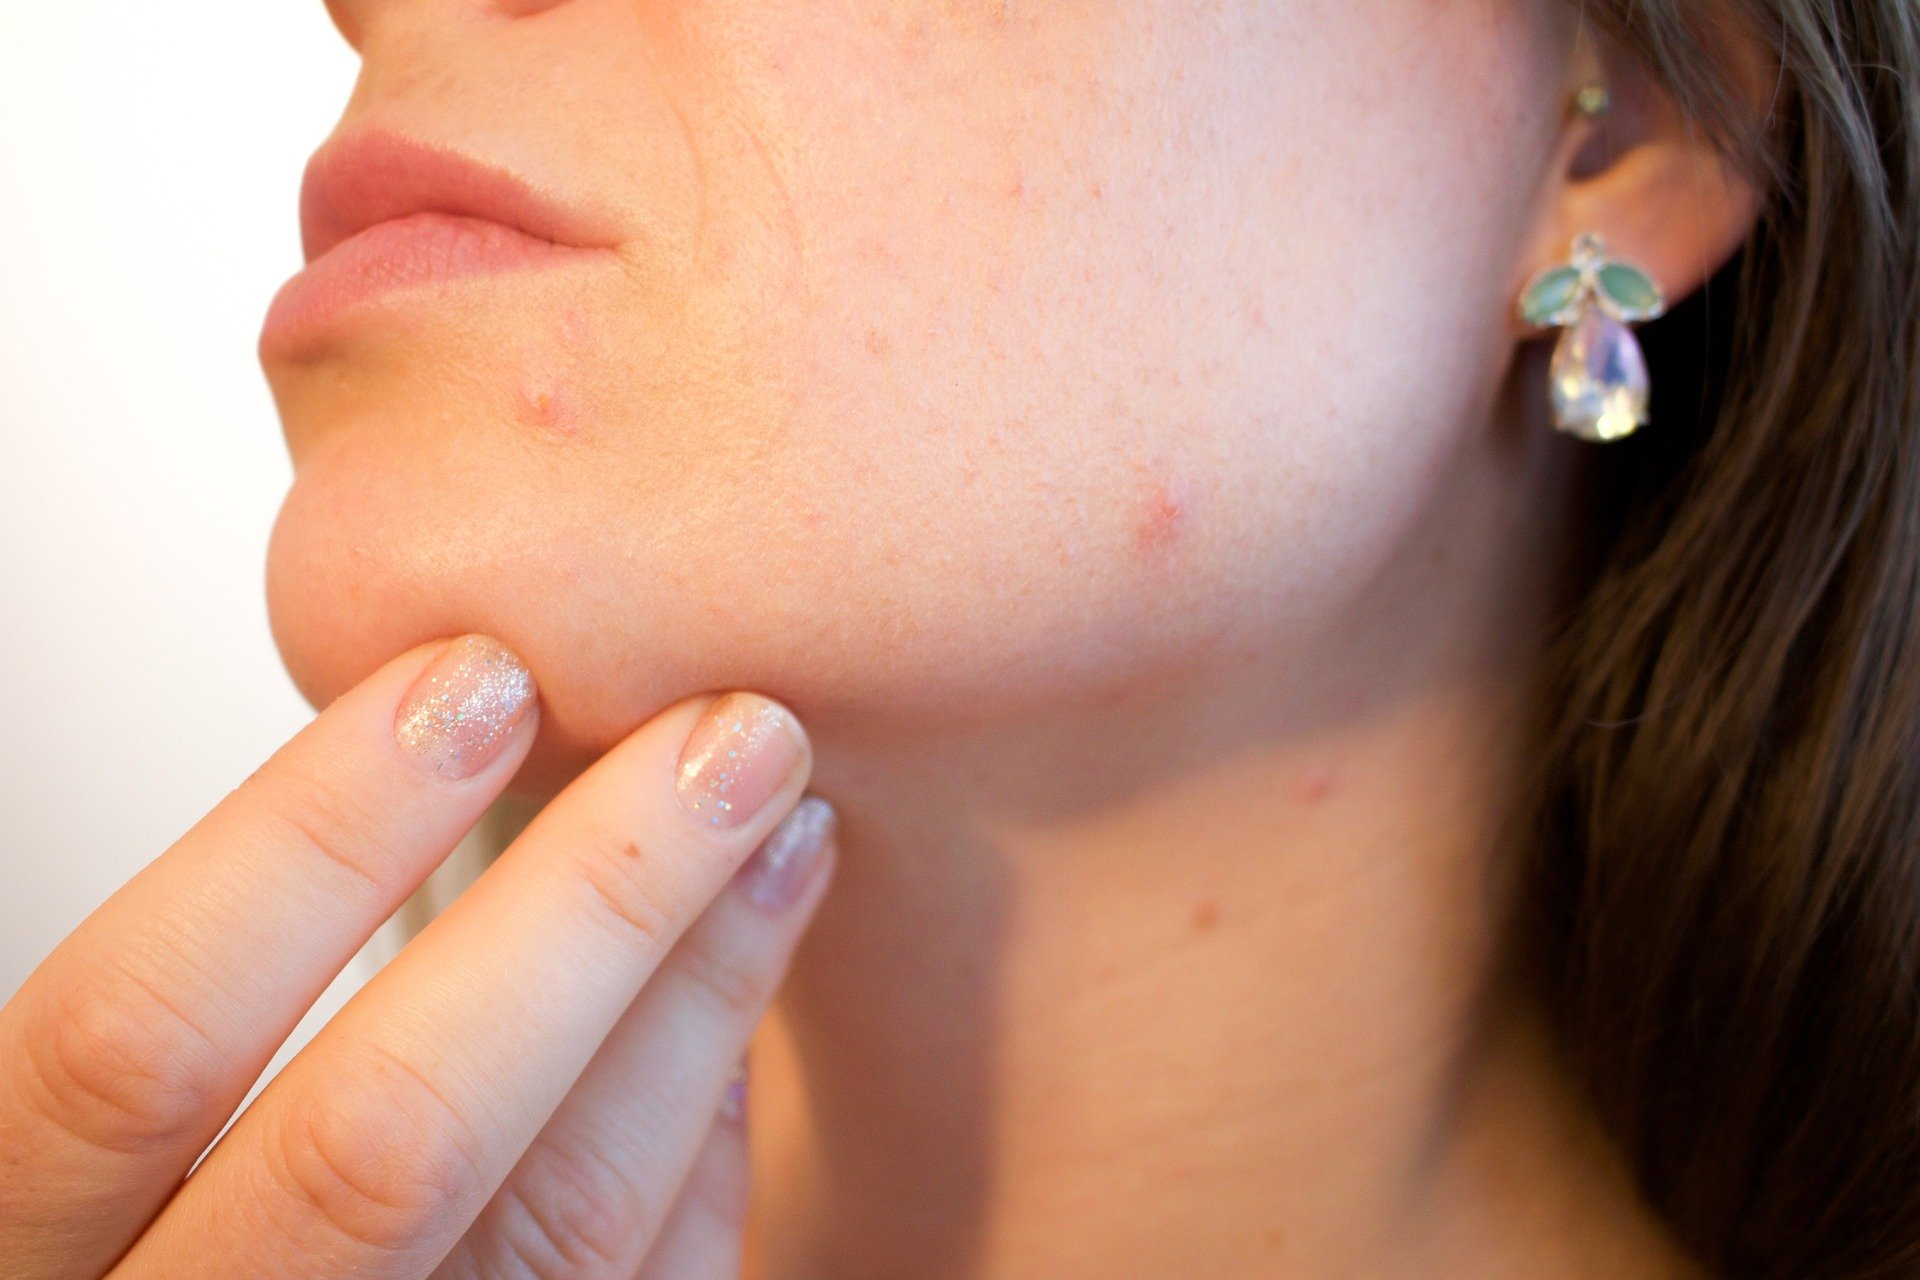 Causes of Pimple